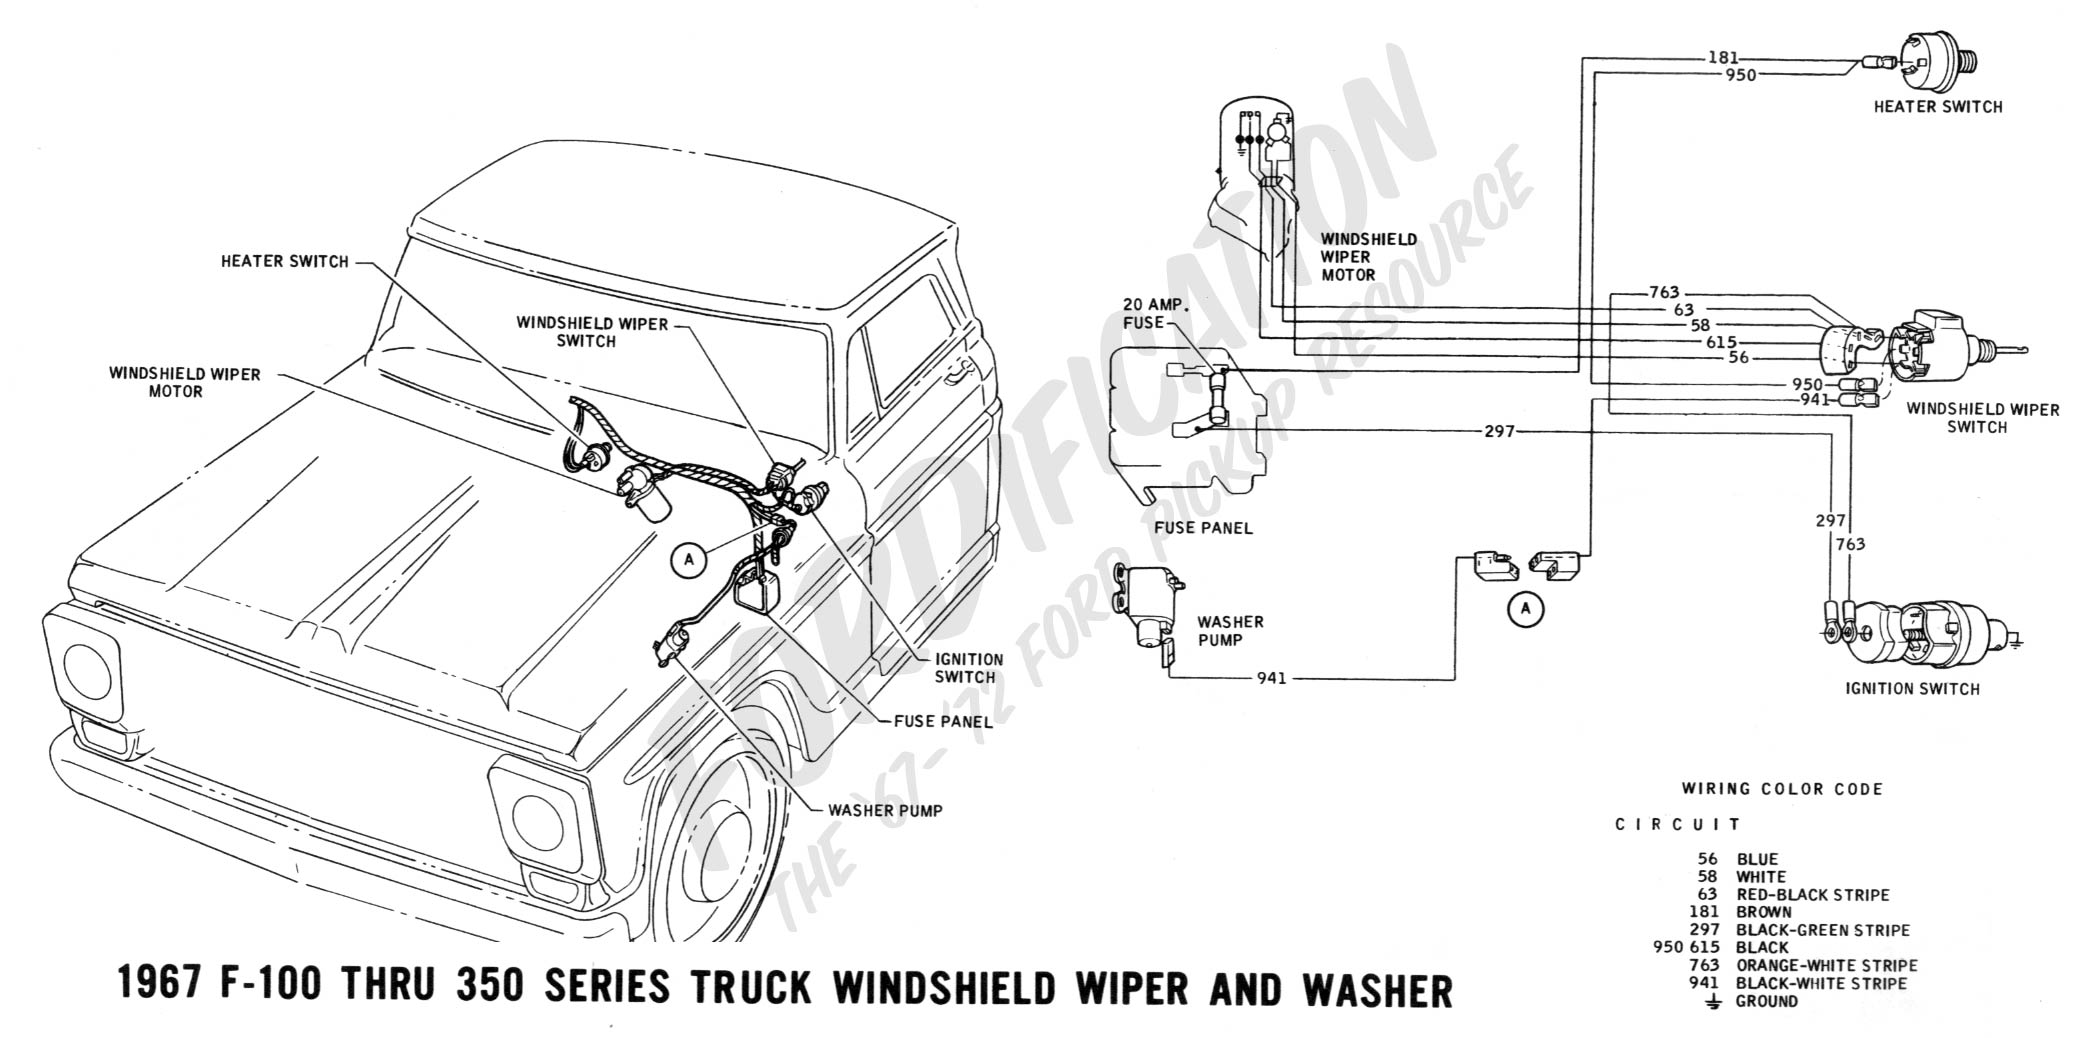 wiring 1967wipers wiper wiring diagram wiper wiring diagram for 1985 chevy vega windshield wiper wiring diagram at panicattacktreatment.co